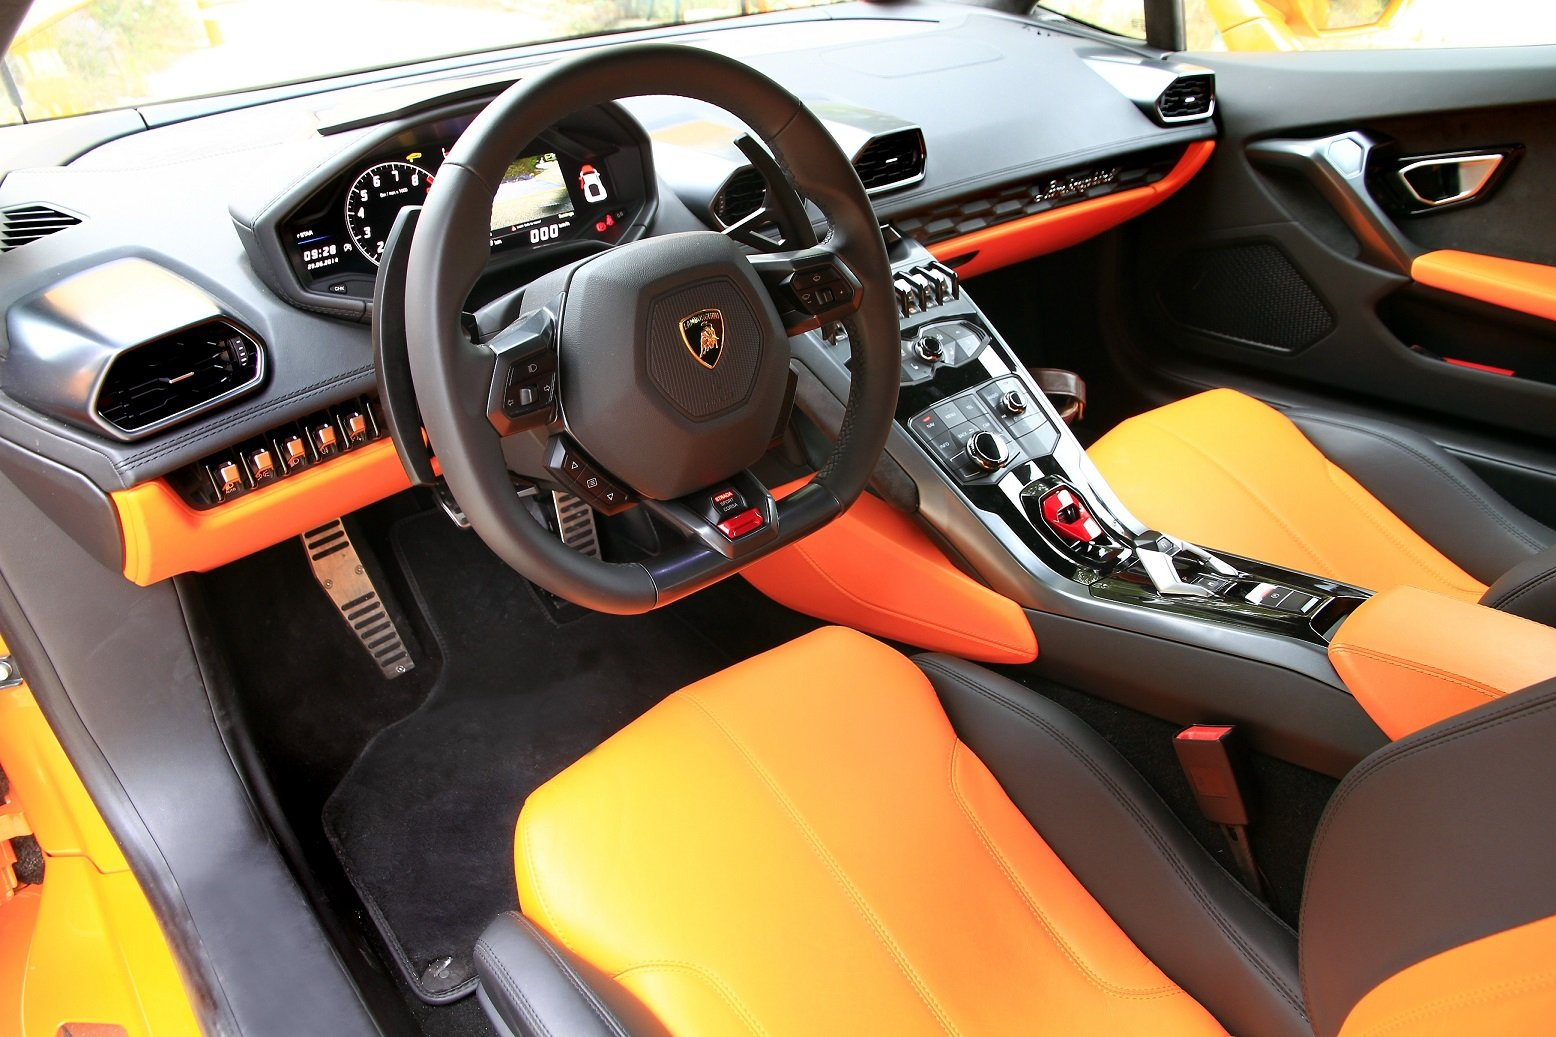 2014 610 4 huracan lamborghini lb724 orange supercar wallpaper 1556x1037 389999 wallpaperup